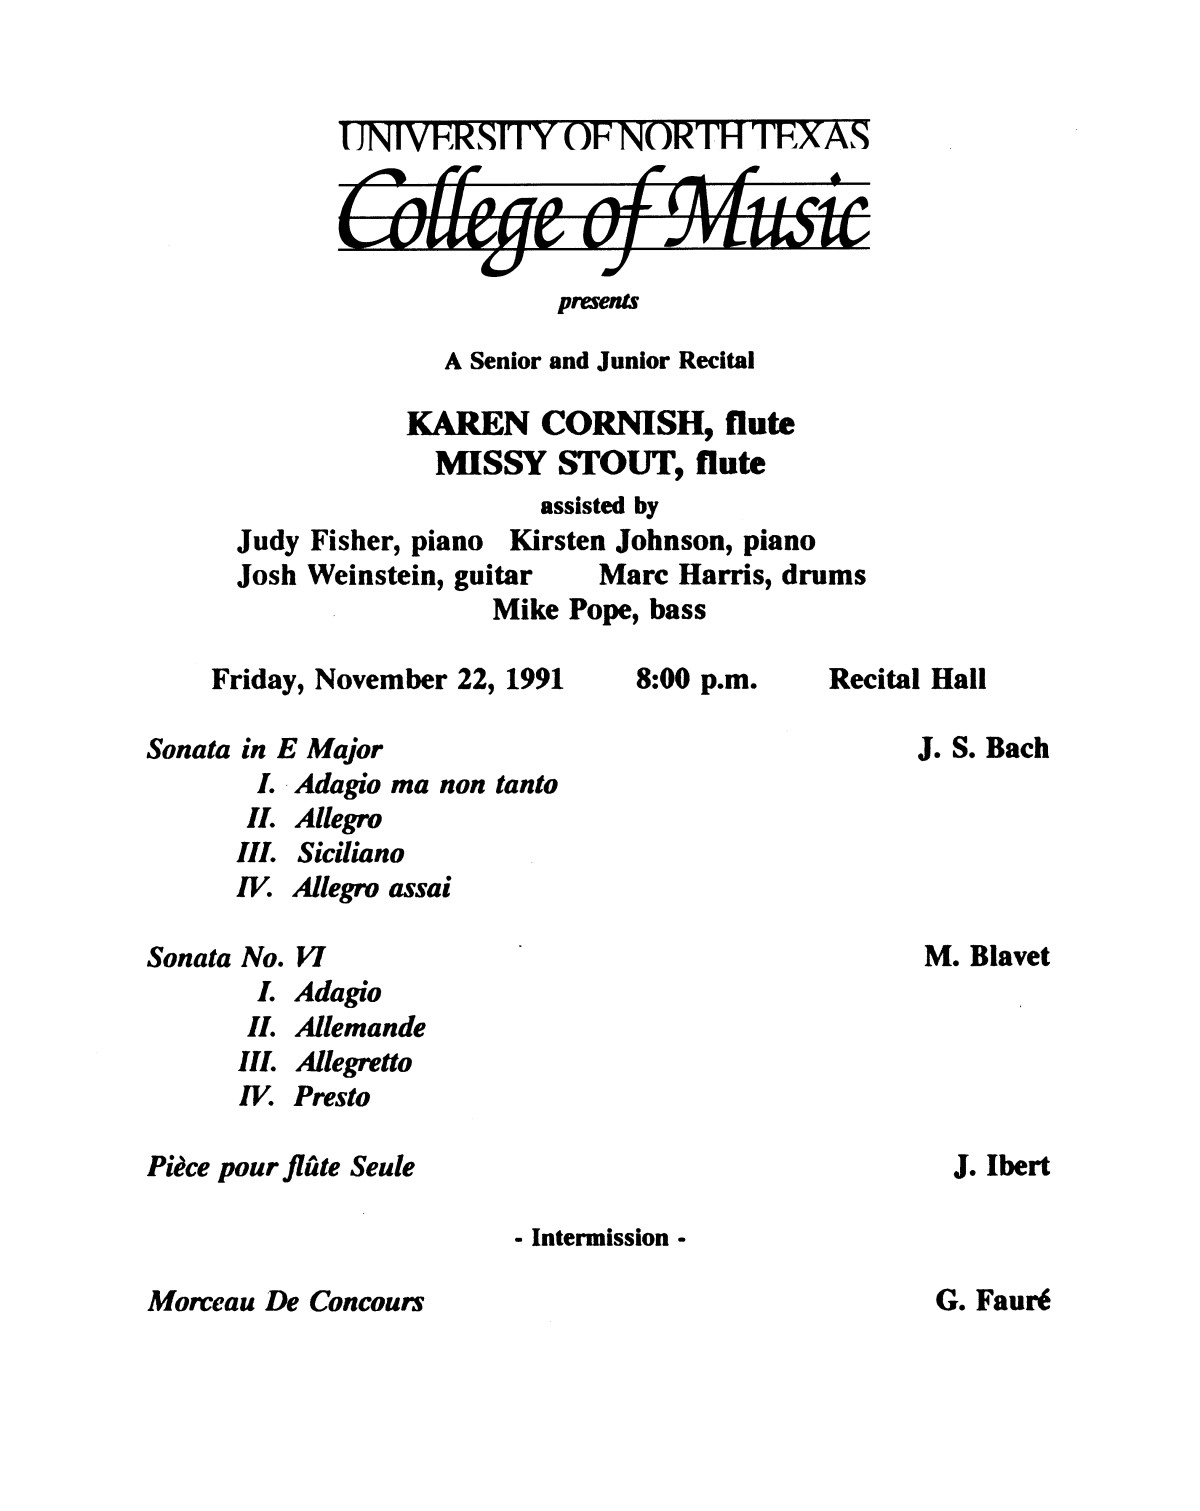 College of Music program book 1991-1992 Student Performances Vol. 2                                                                                                      [Sequence #]: 77 of 310